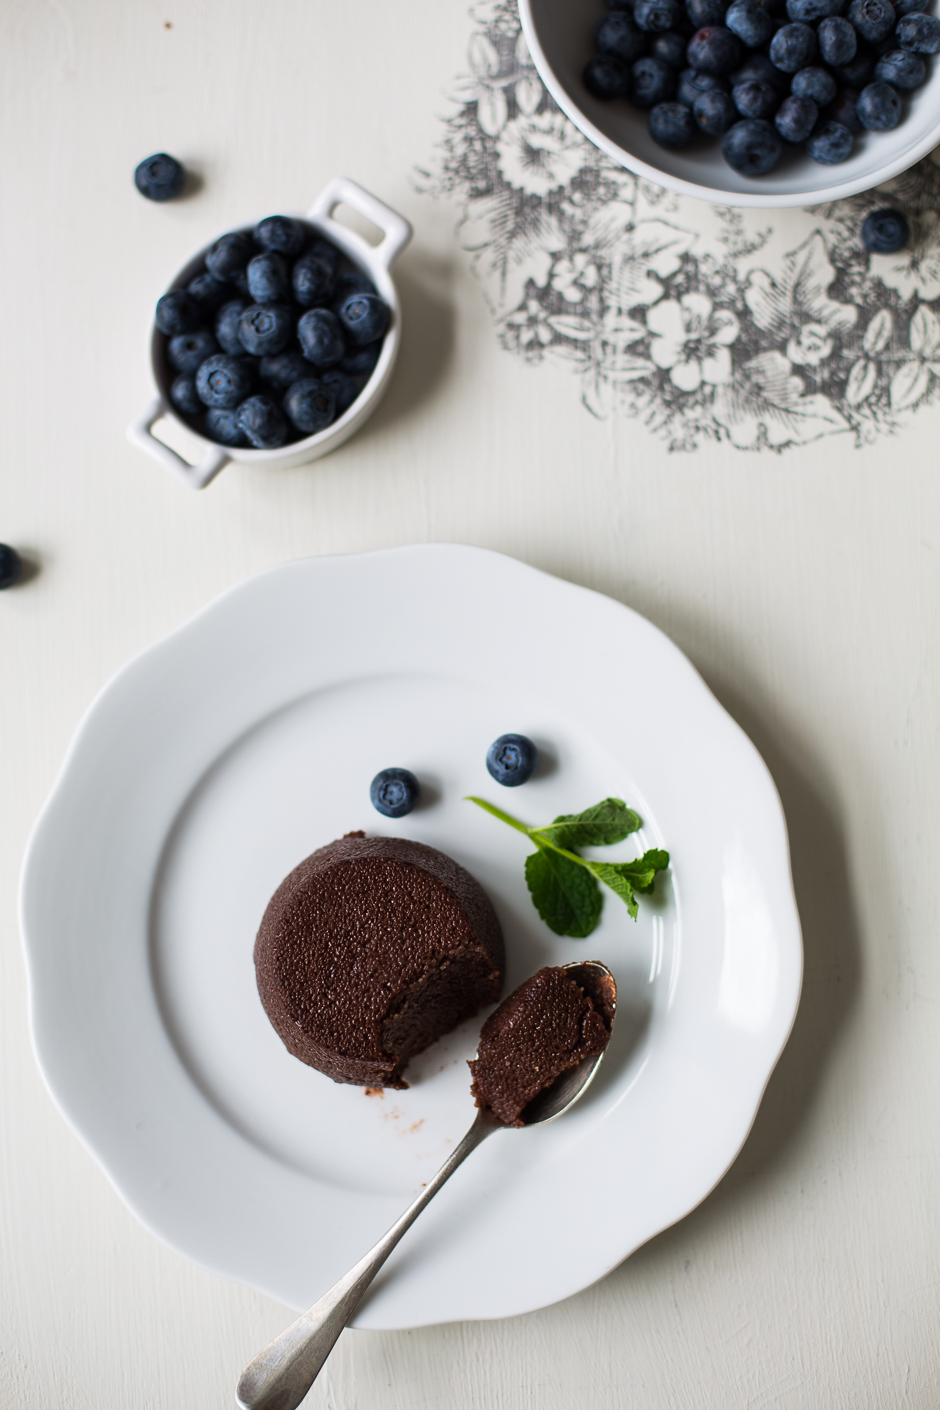 cocoa semolina pudding from the Taste of Memories Hungarian country kitchen www.tasteofmemories.com